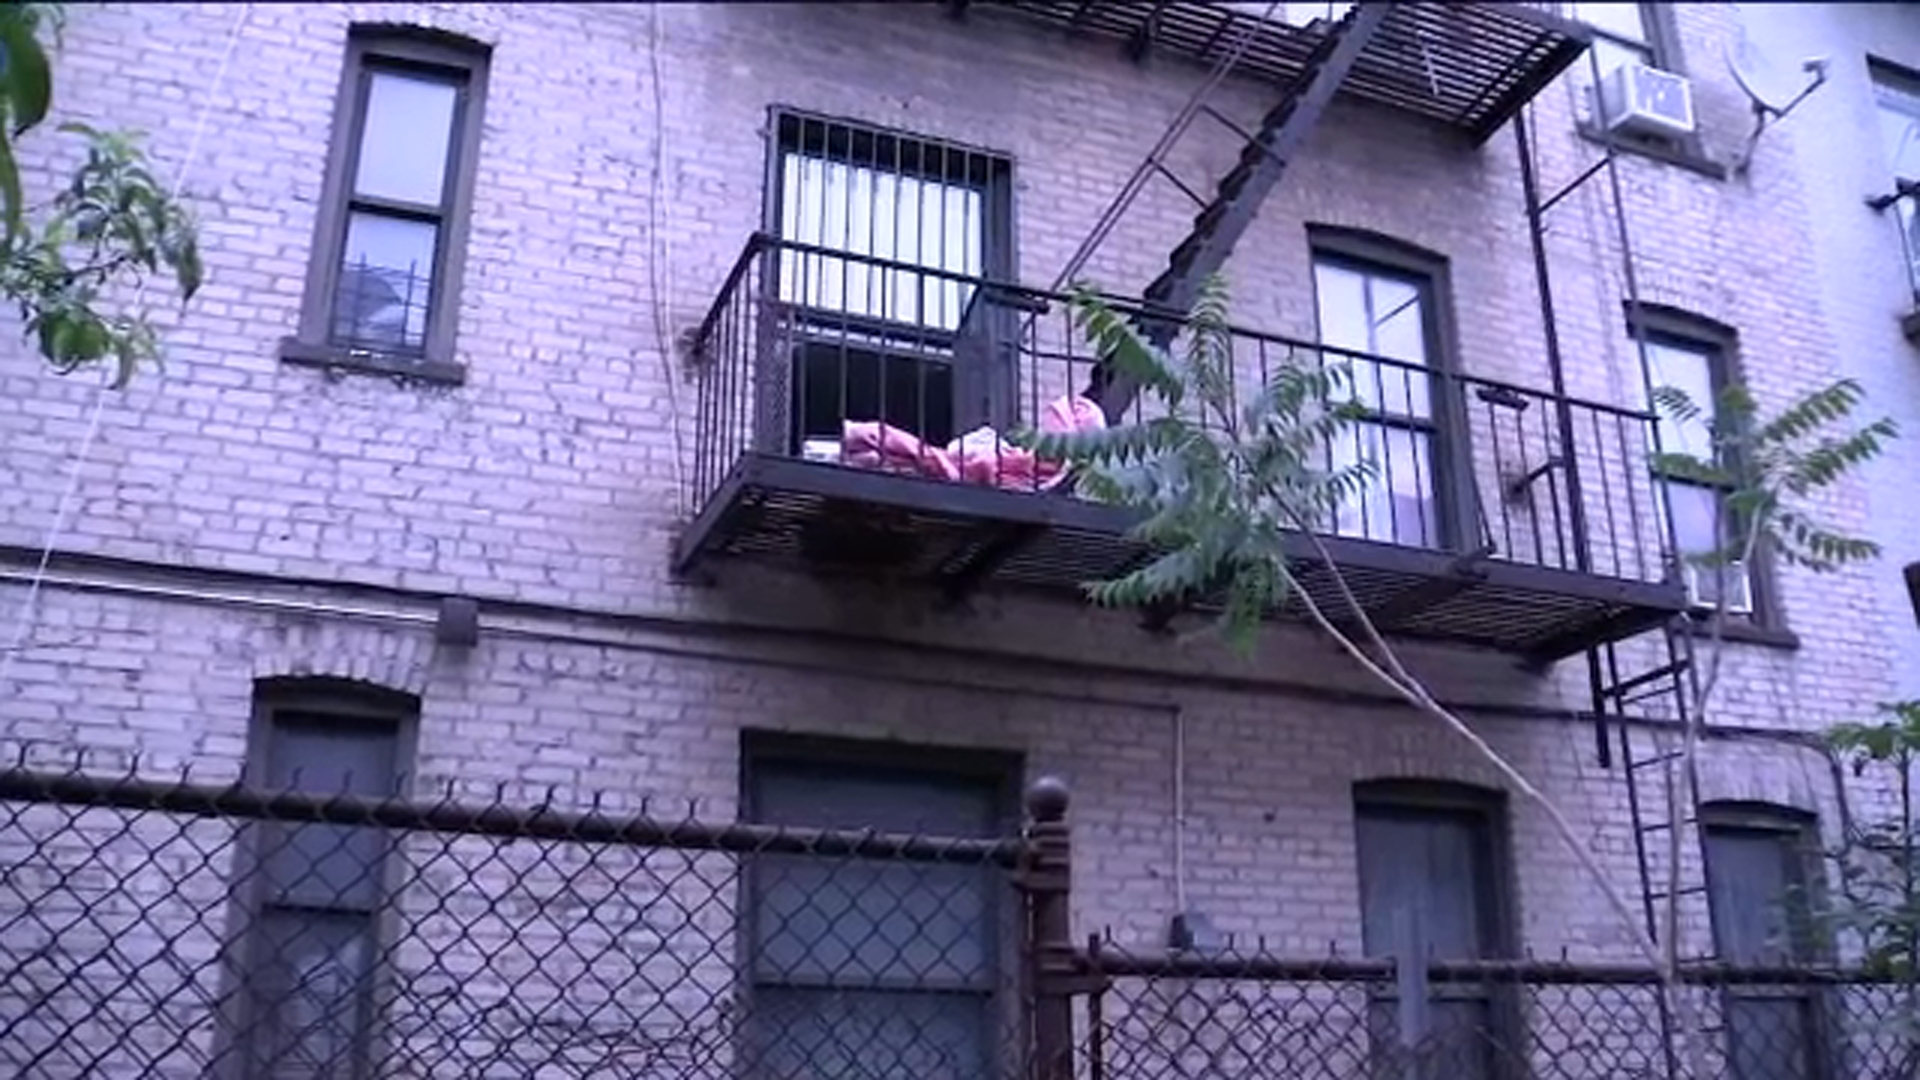 Mother throws children out window; jumps from 6-story building